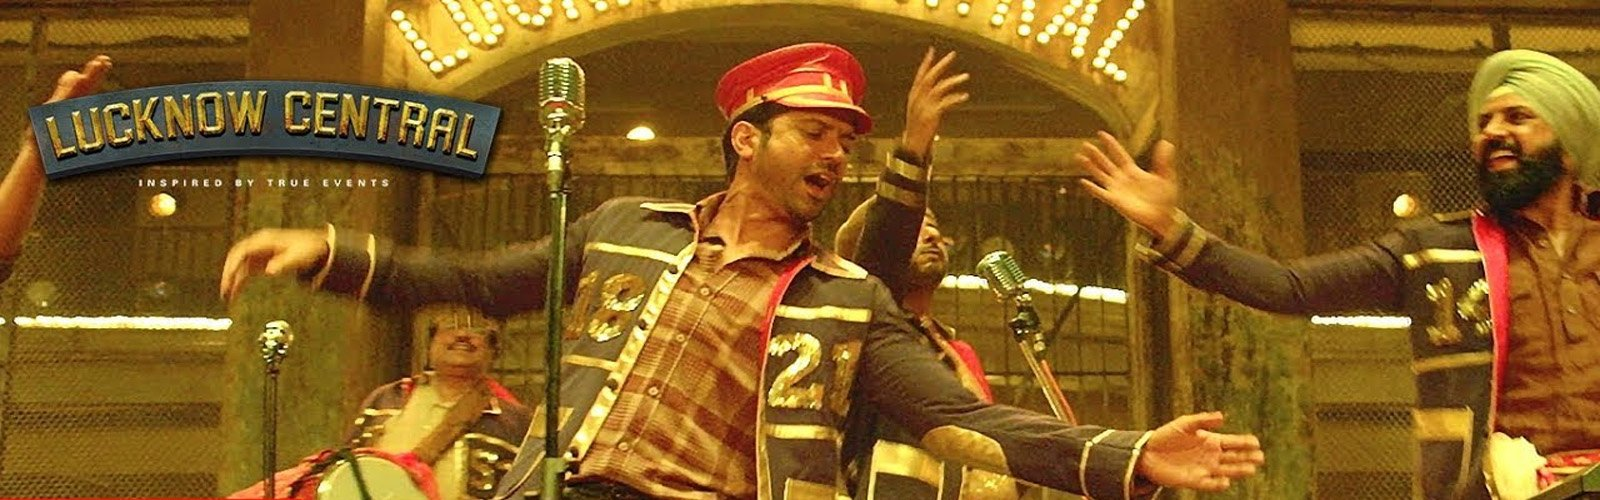 Movie Review: Lucknow Central